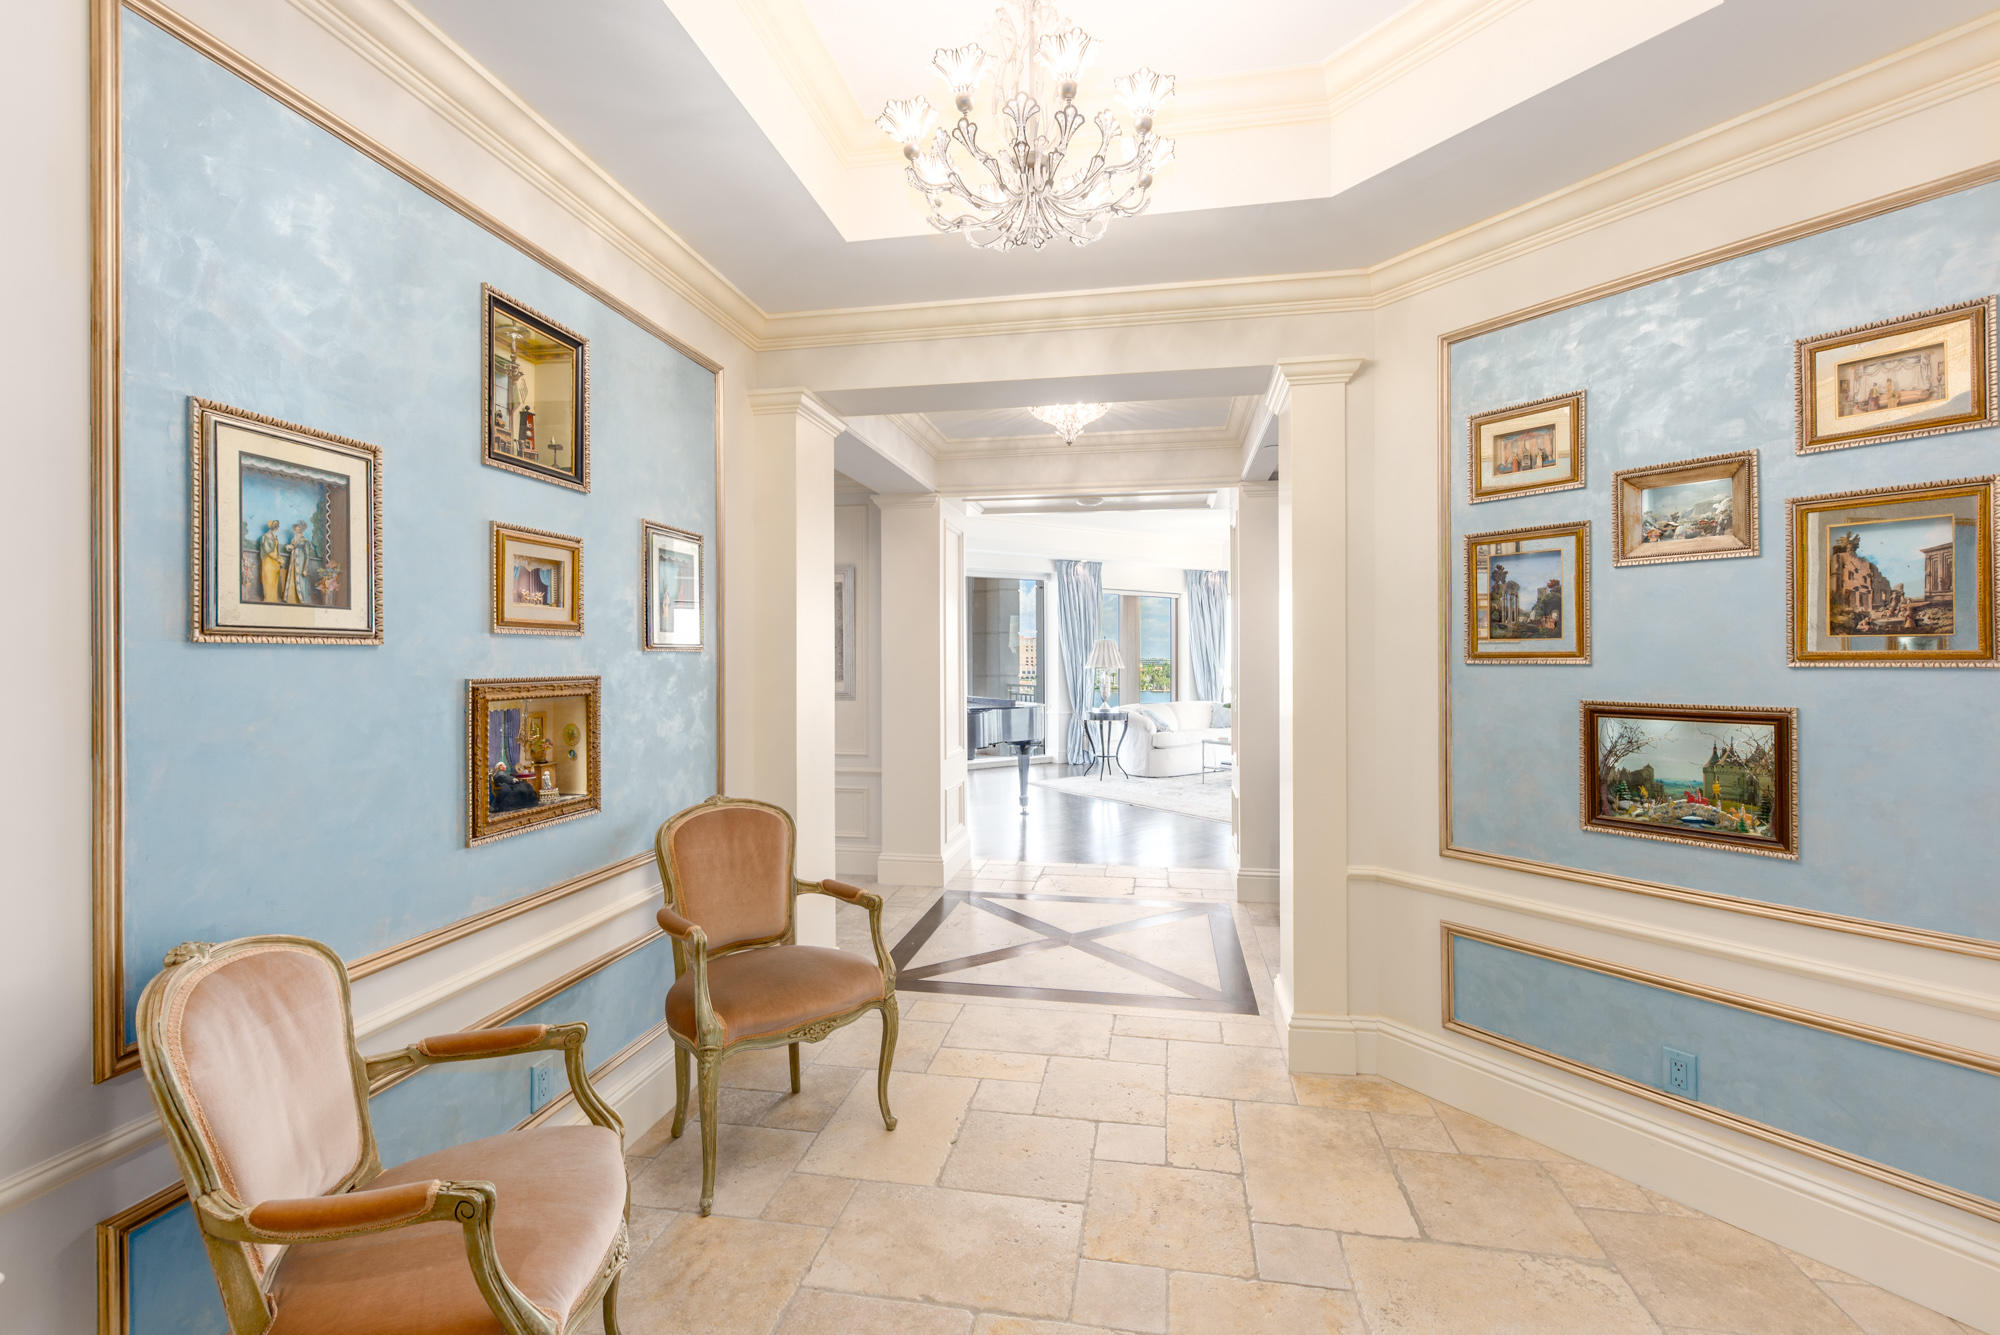 Home for sale in ONE WATERMARK PLACE OF THE PALM BEACHES CONDOMINIUM West Palm Beach Florida